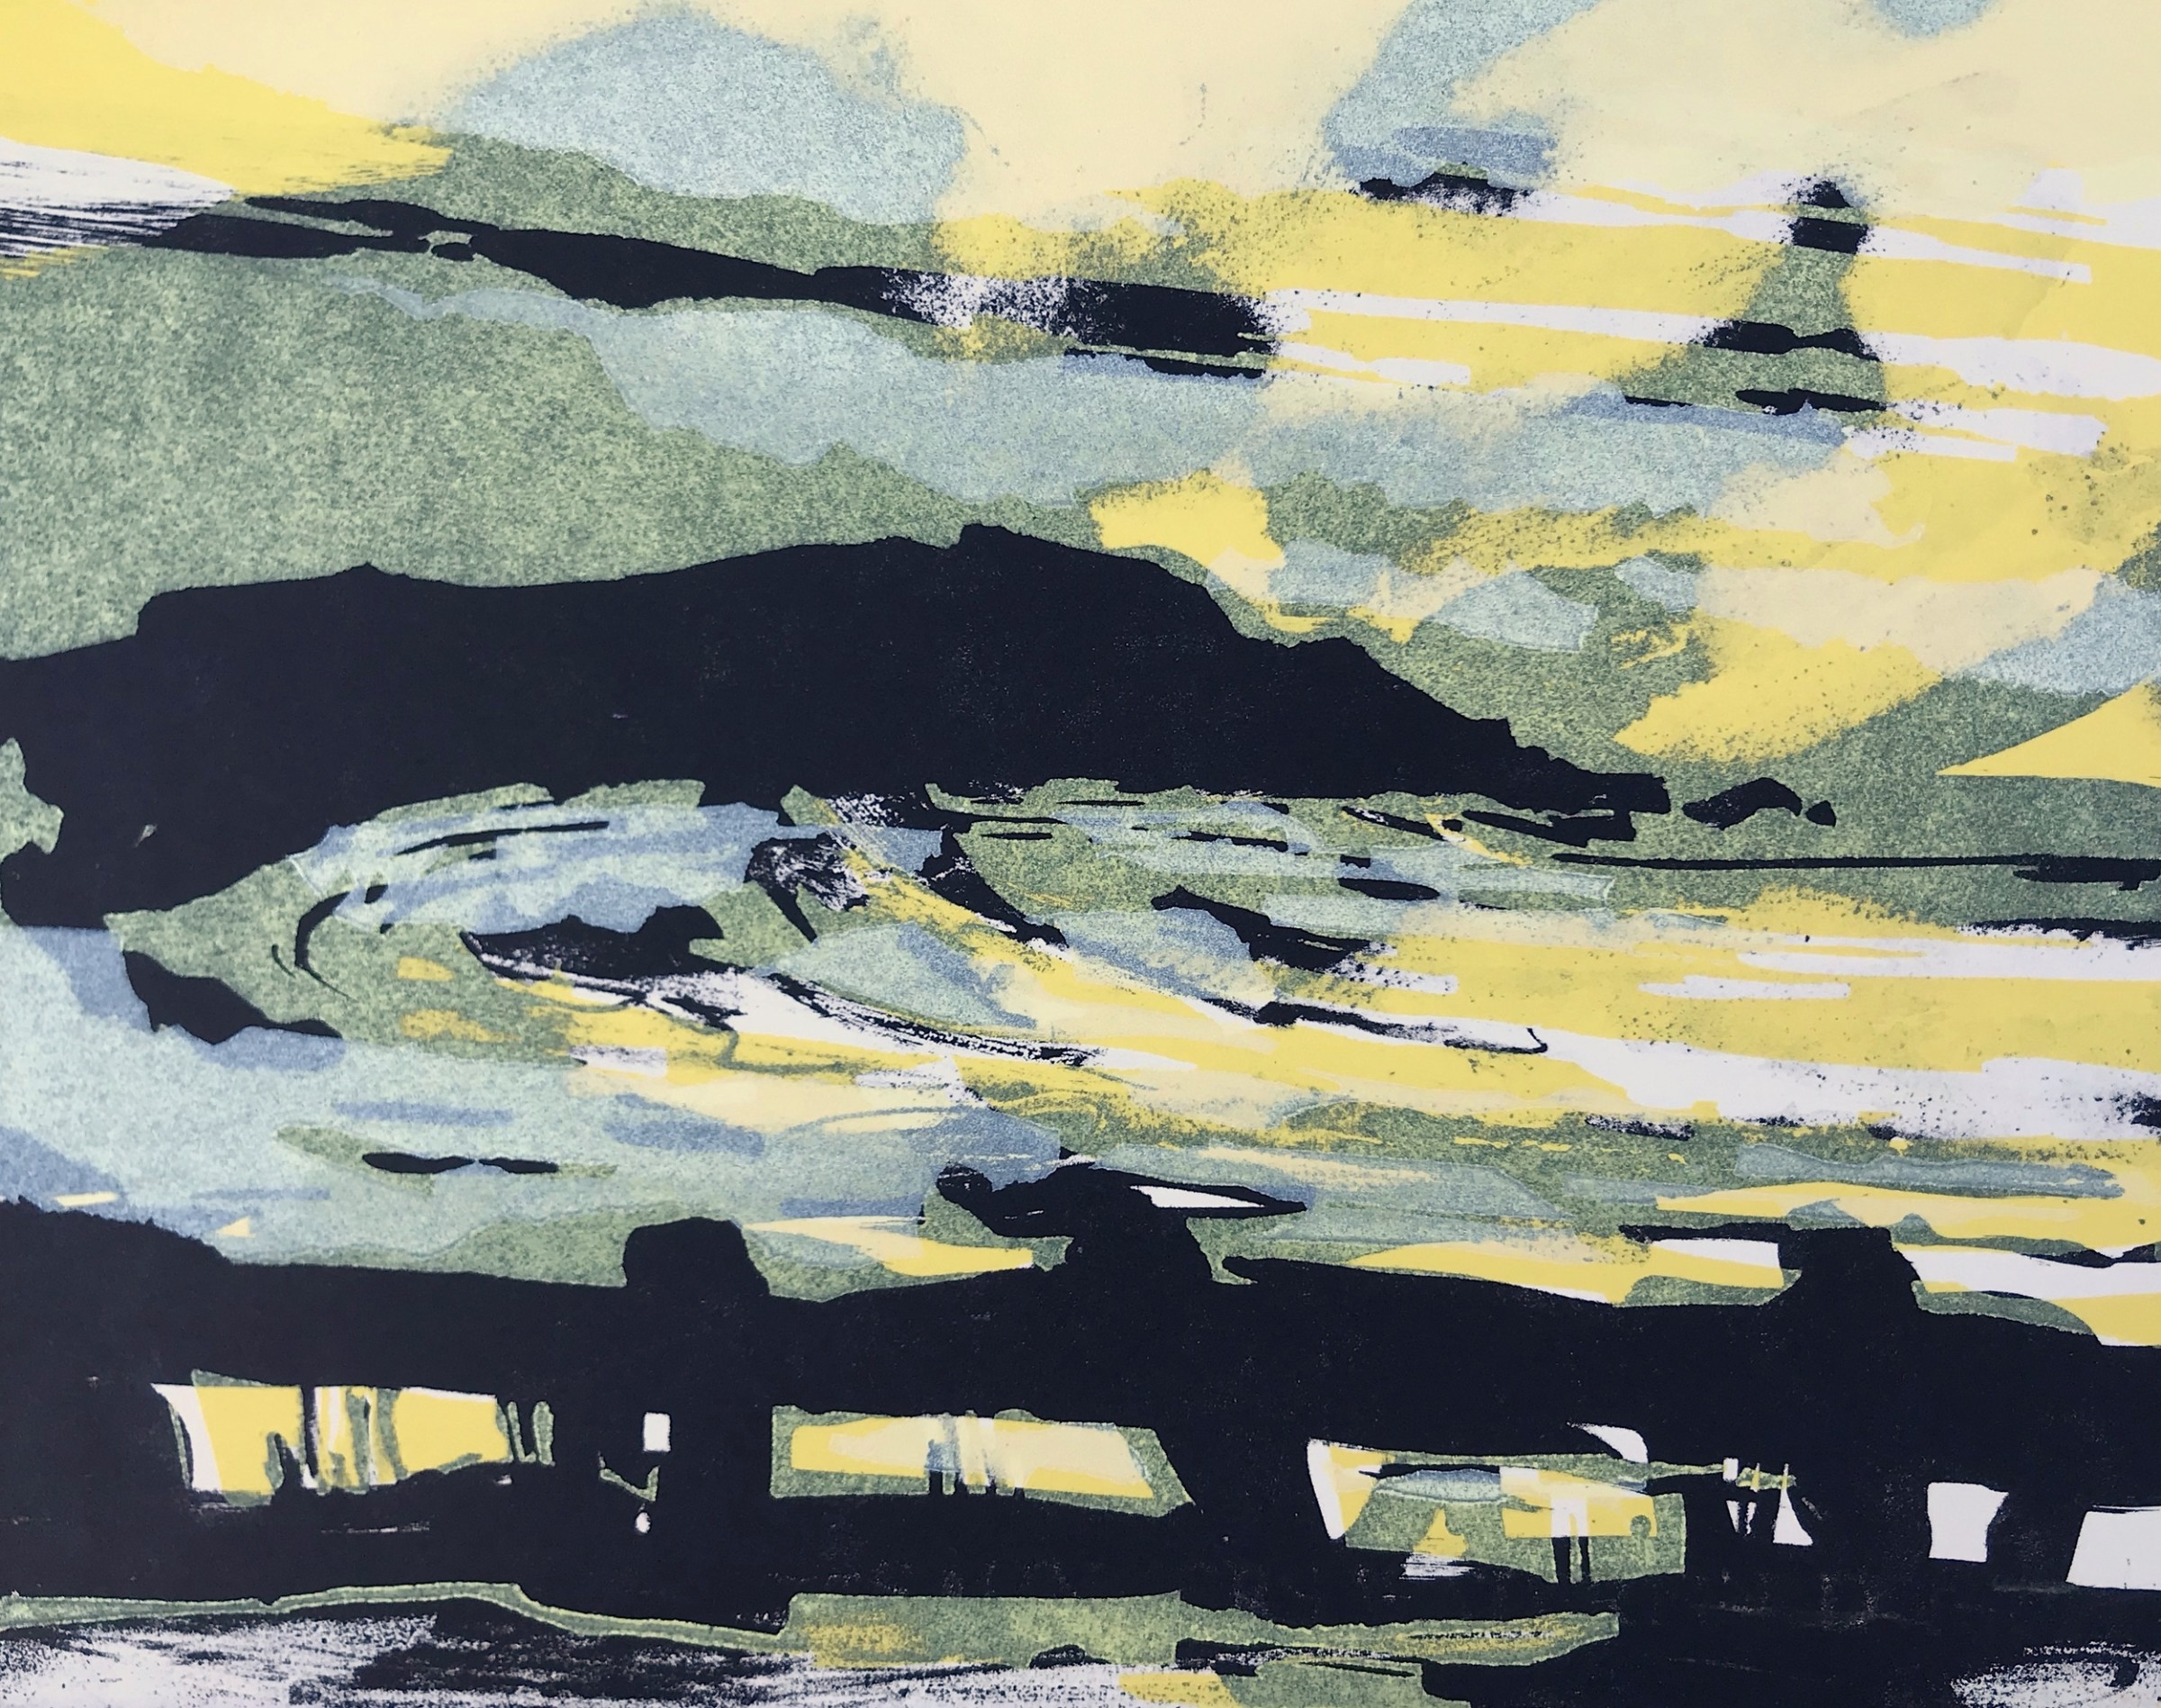 """<span class=""""link fancybox-details-link""""><a href=""""/exhibitions/18/works/image_standalone1005/"""">View Detail Page</a></span><p>Rachel Gracey RE</p><p>Pacifica State Park</p><p>relief and lithography</p><p>38 x 34cm</p><p>£310 framed</p><p>£250 unframed</p><p></p>"""